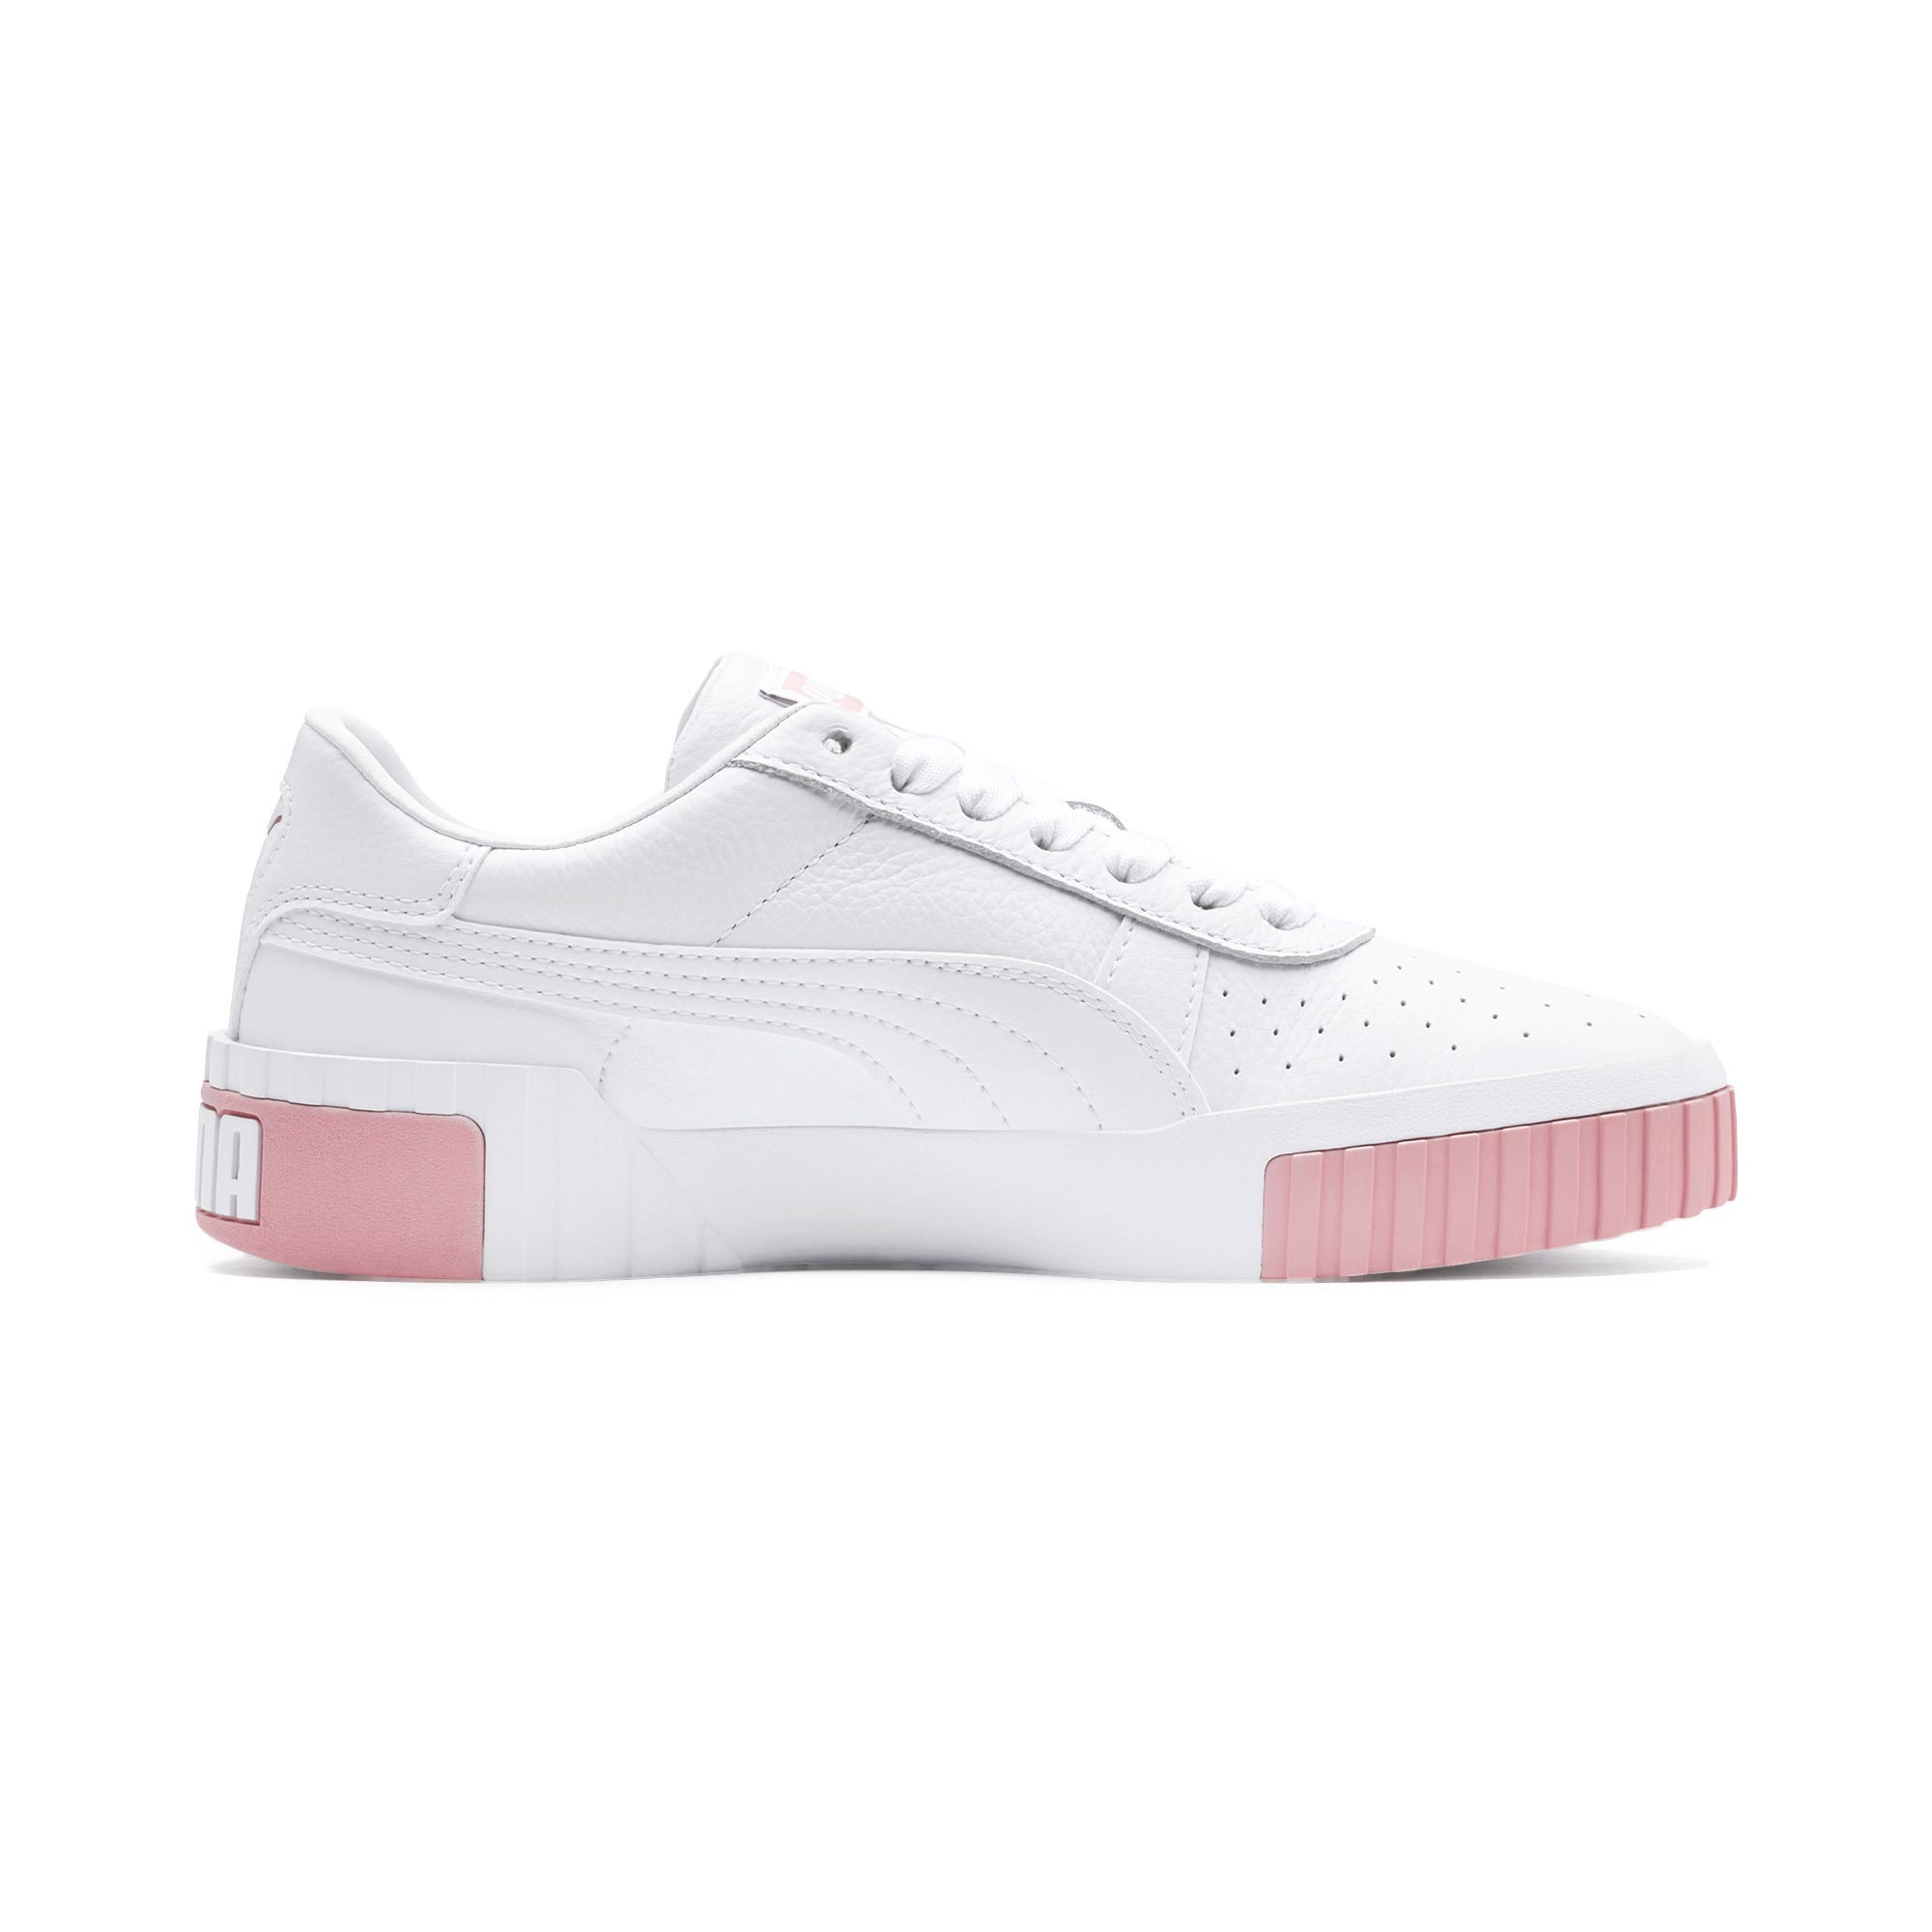 Thumbnail 6 of Cali Women's Trainers, Puma White-Rose Gold, medium